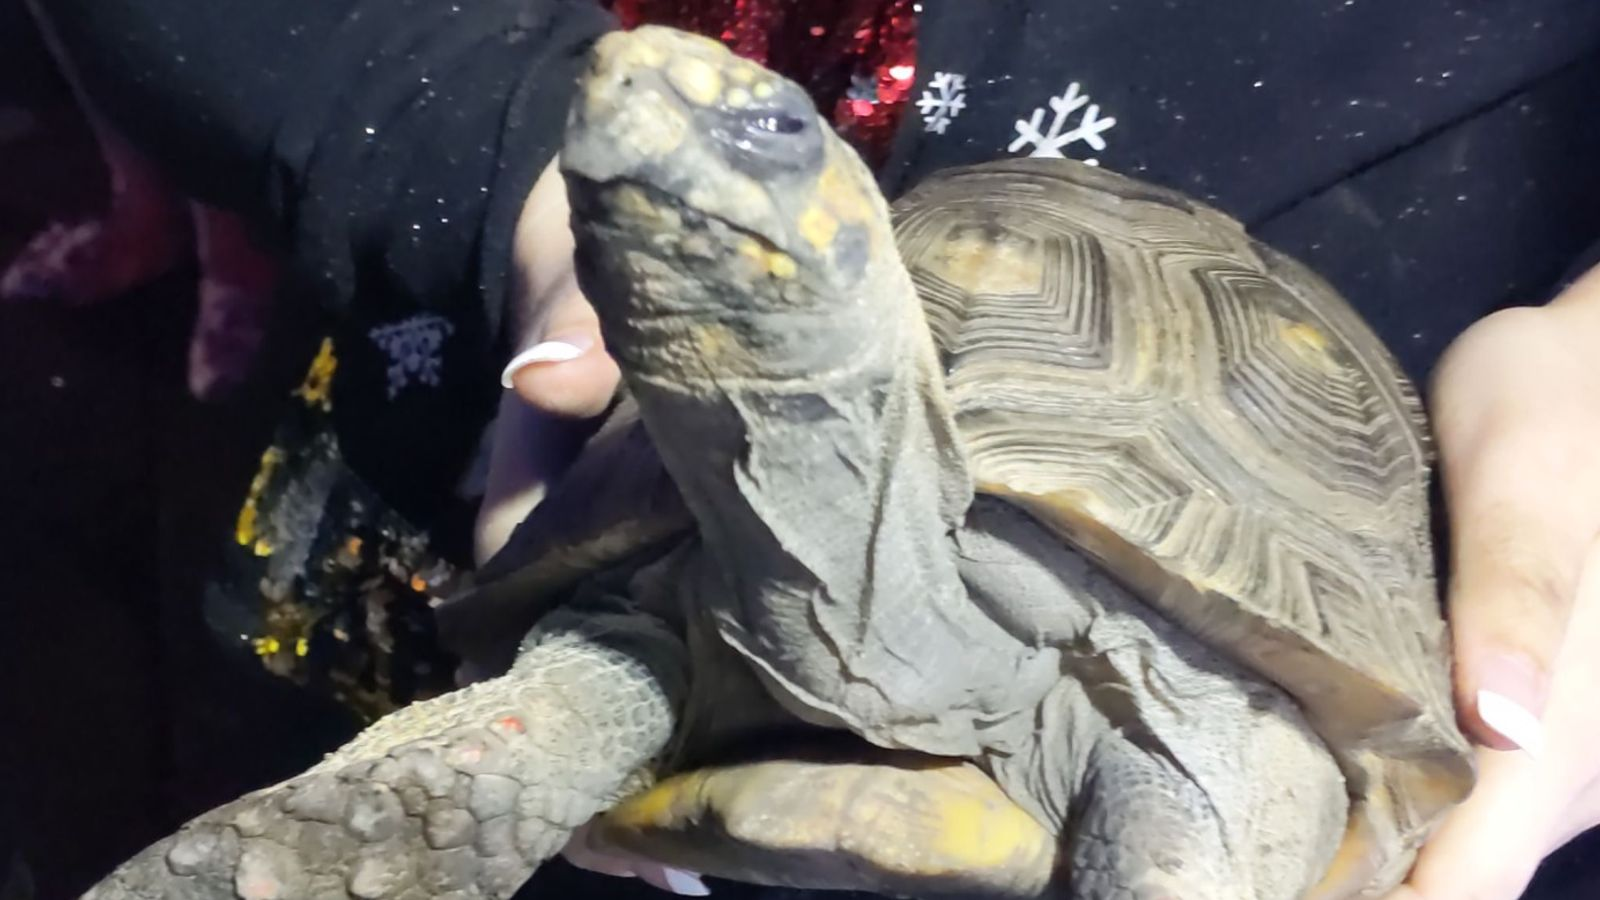 'Angry' tortoise rescued after starting house fire - EpicNews